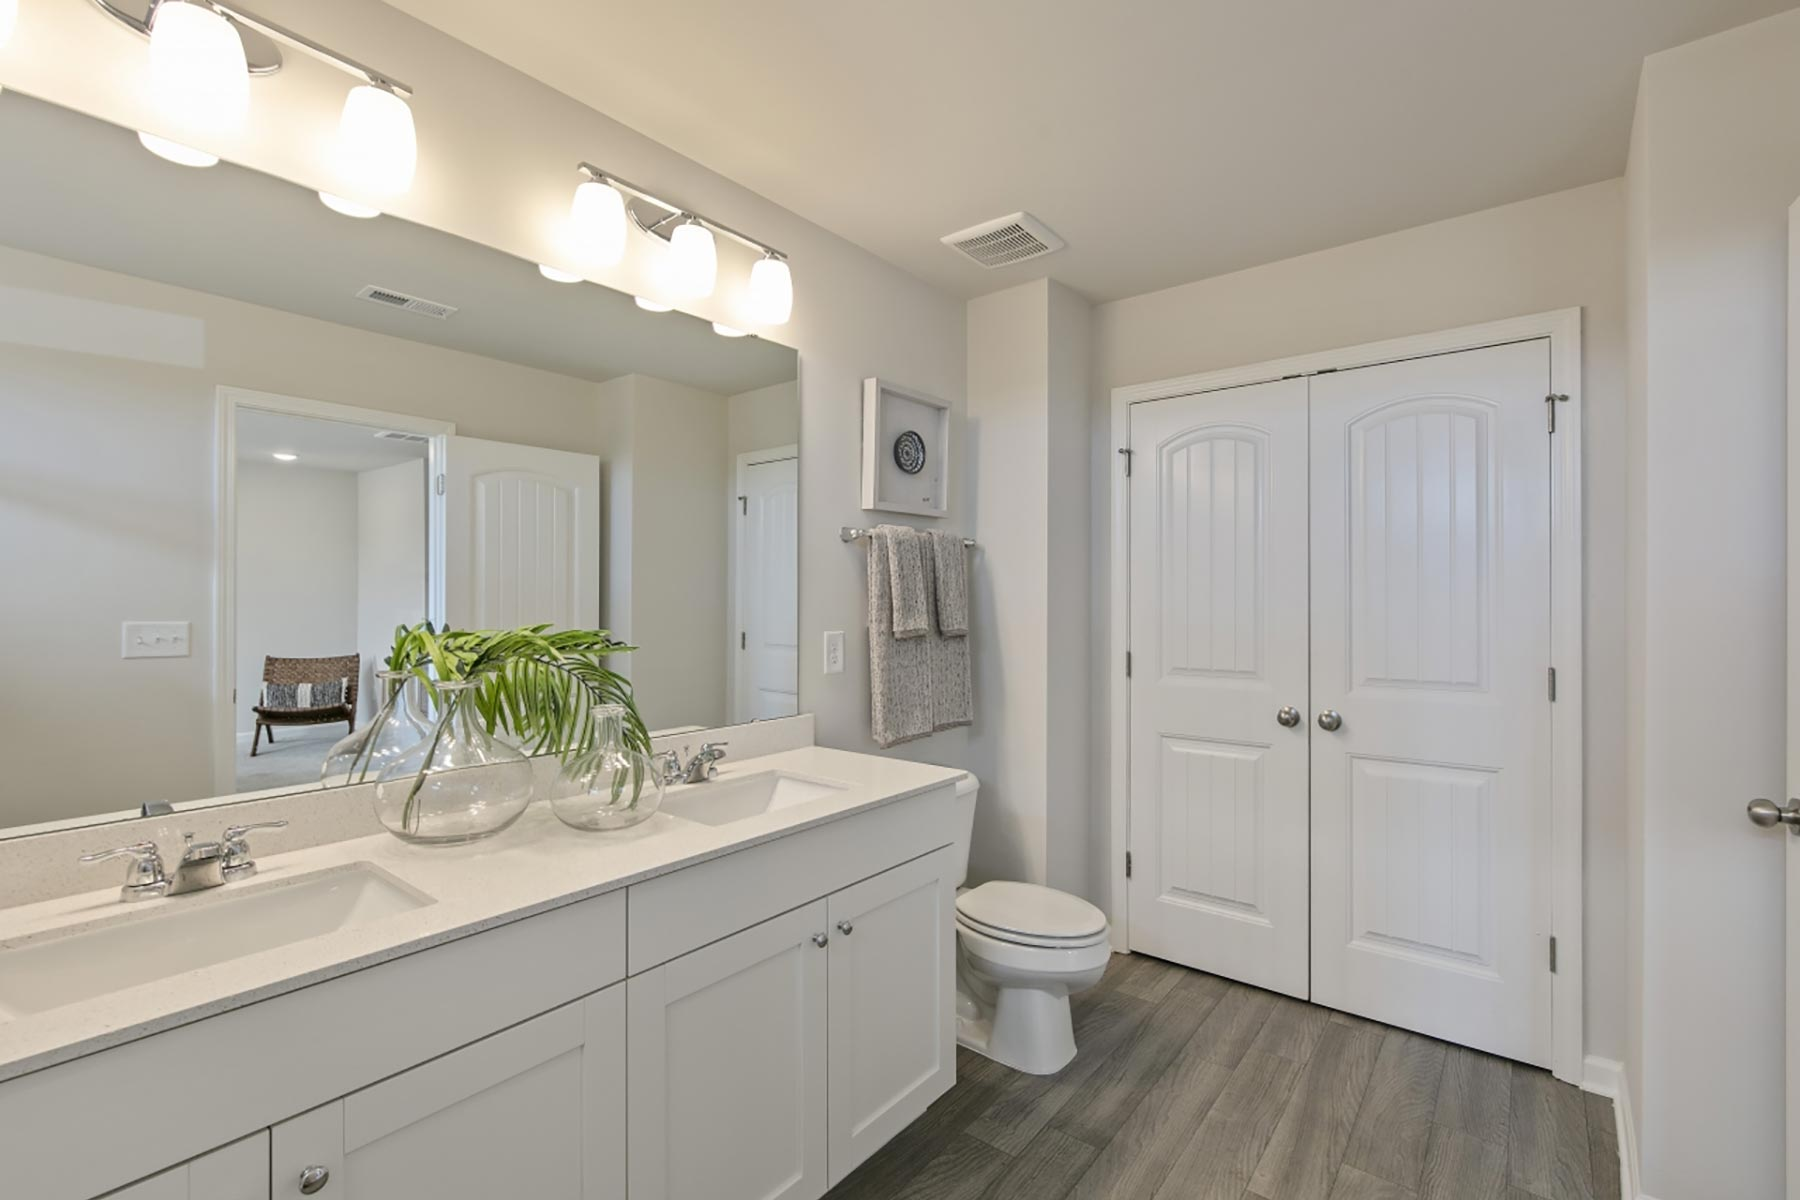 Claymore Plan Bathroom_Master Bath at Minglewood Townhomes in Garner North Carolina by Mattamy Homes